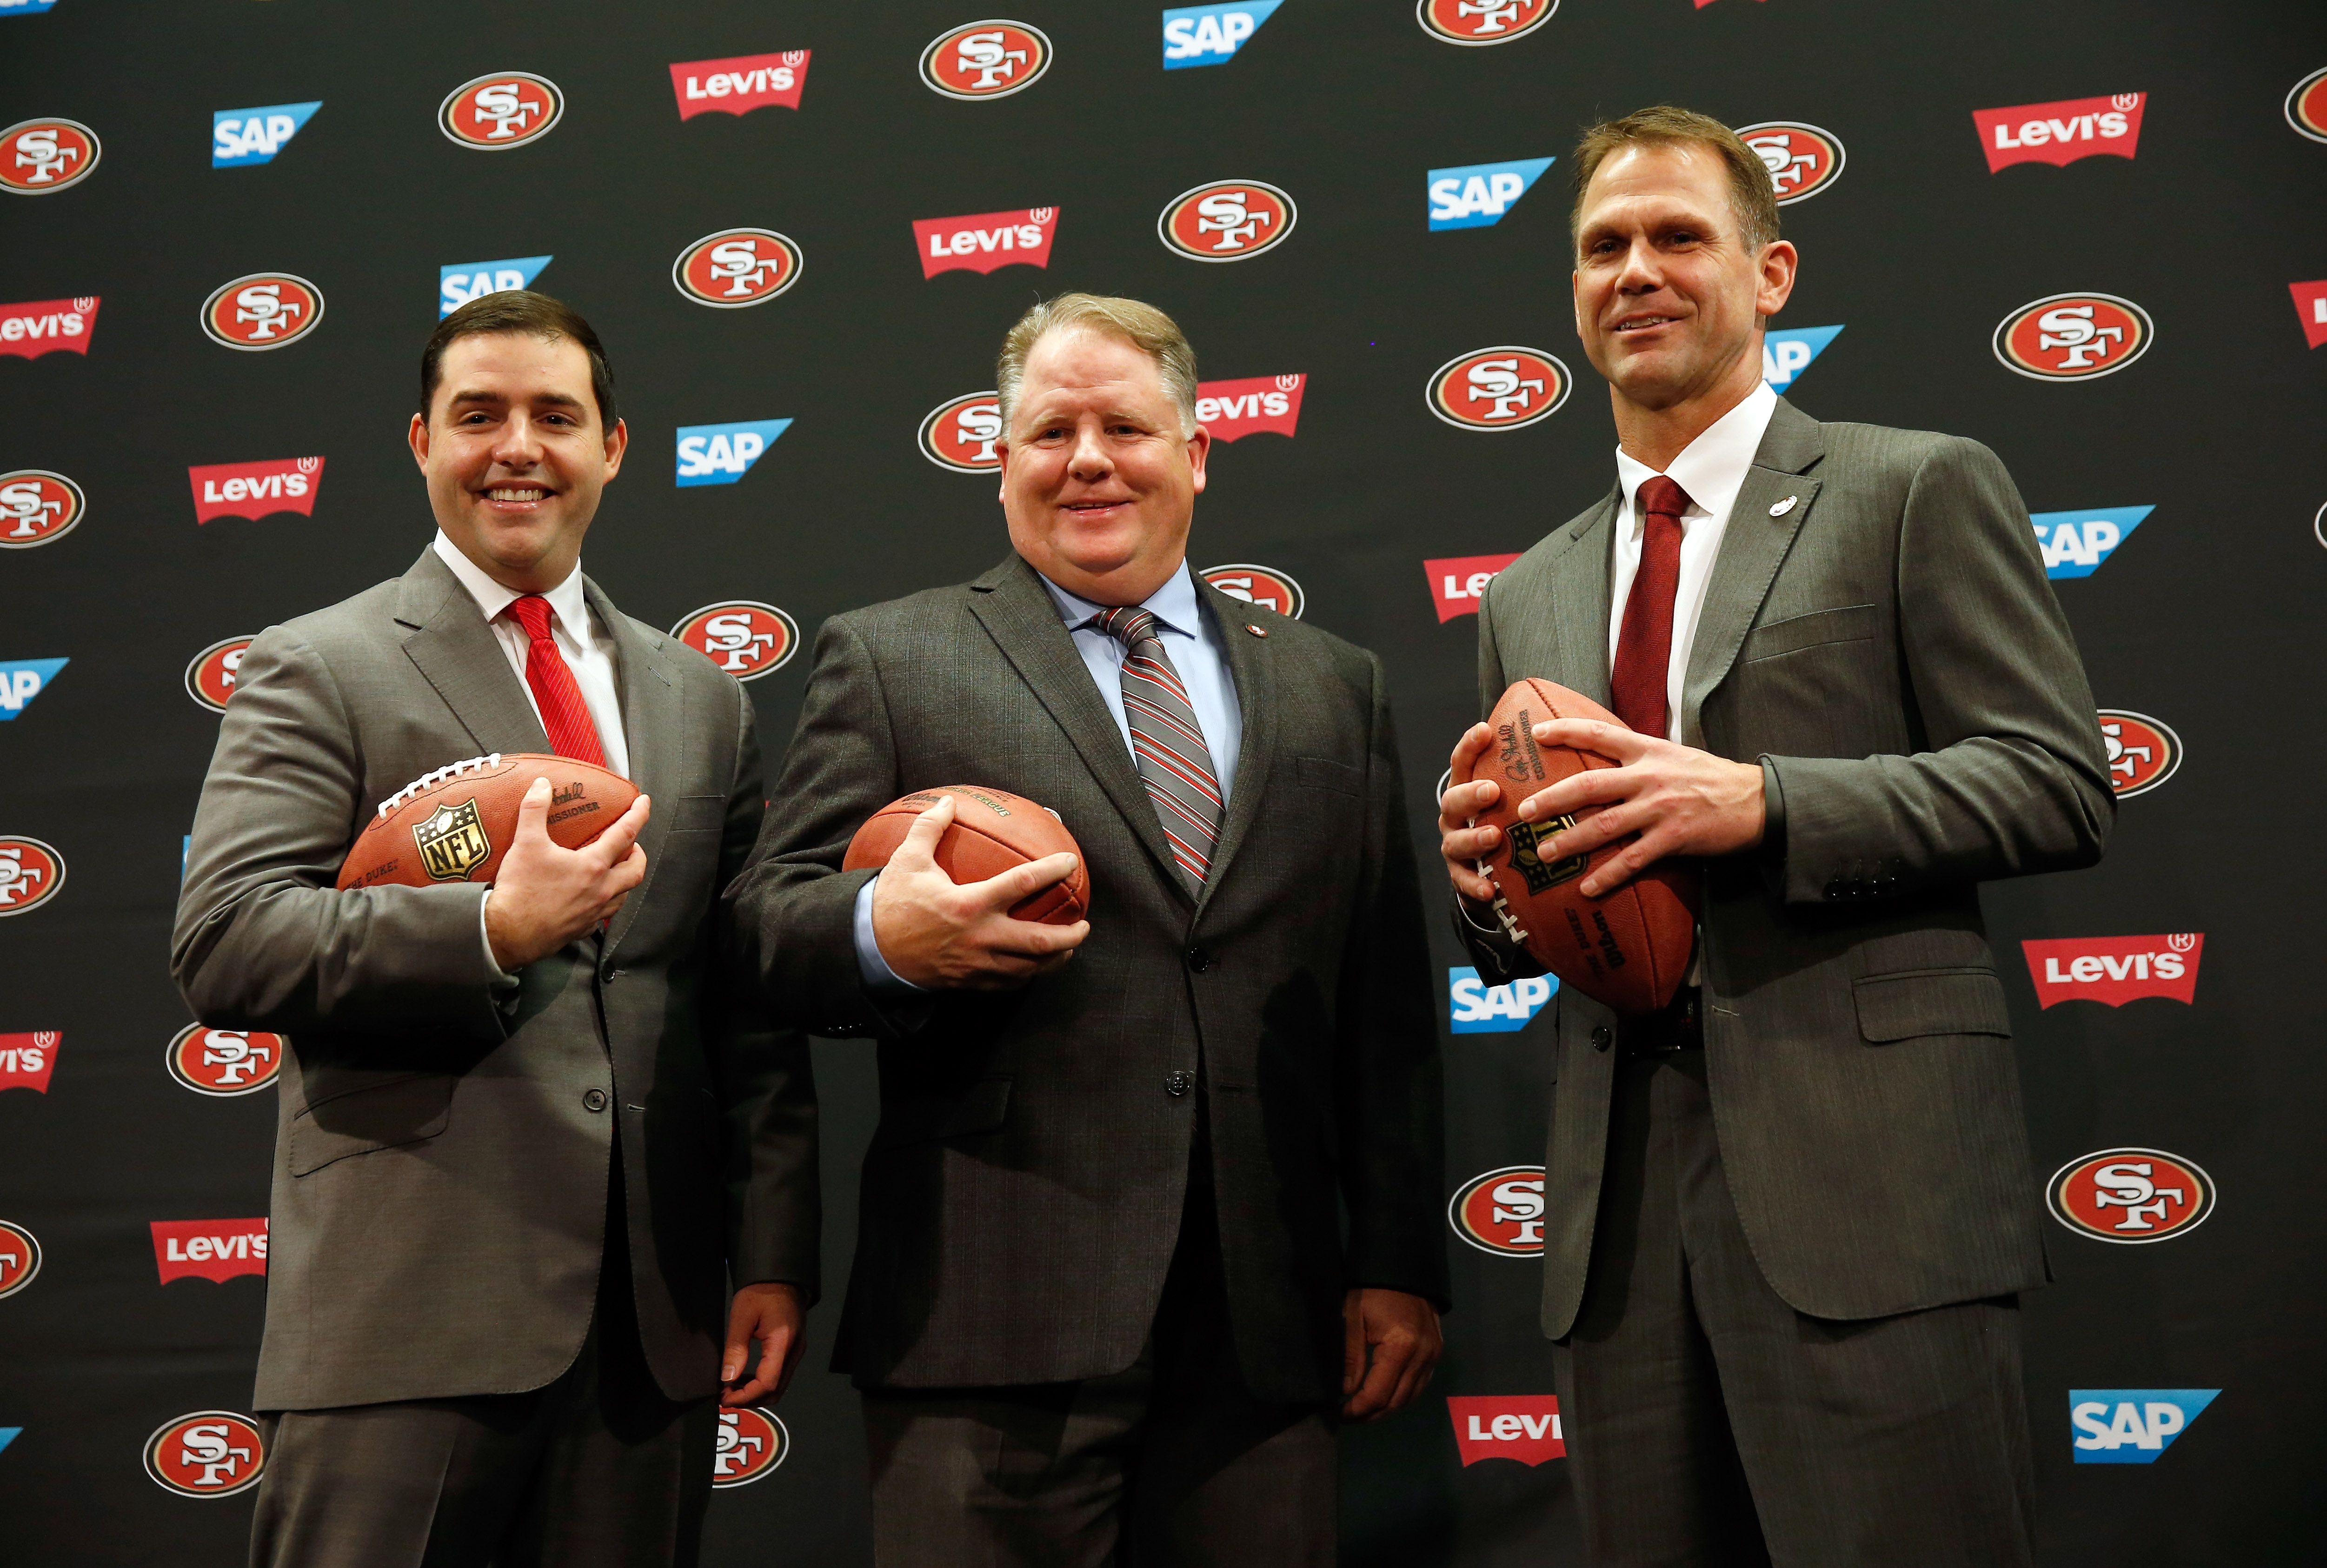 San Francisco 49ers Introduce Chip Kelly